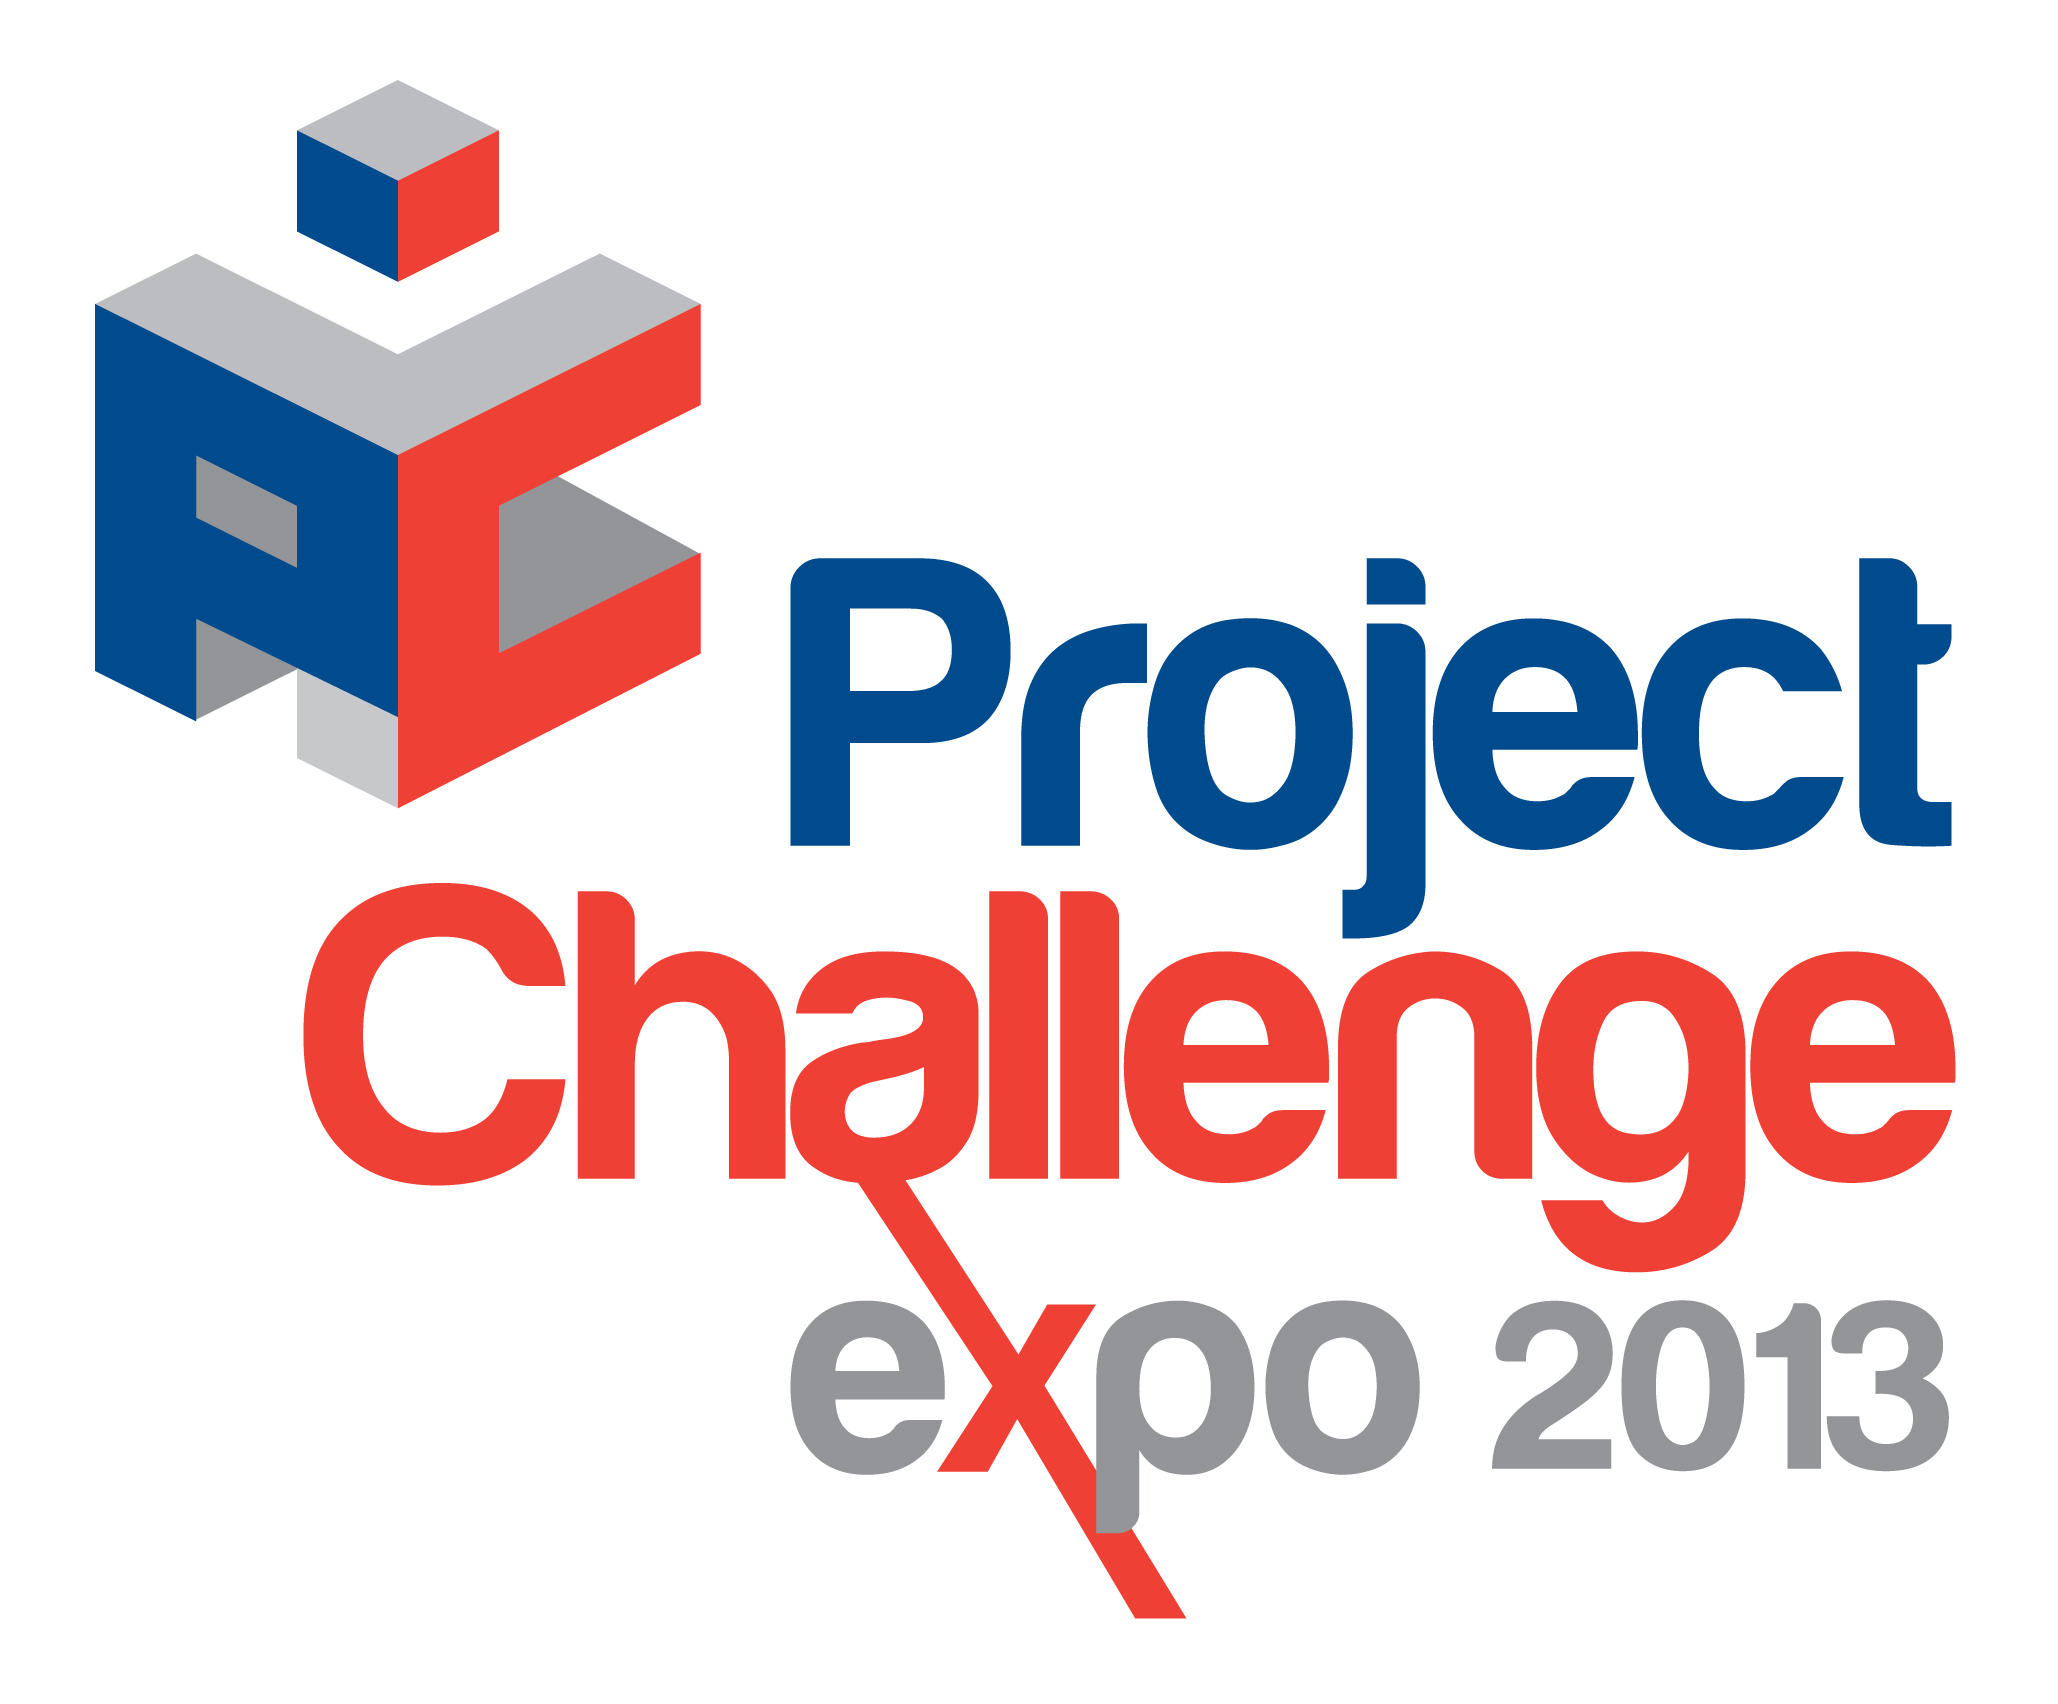 TCC to sponsor and present at Project Challenge Expo 2013